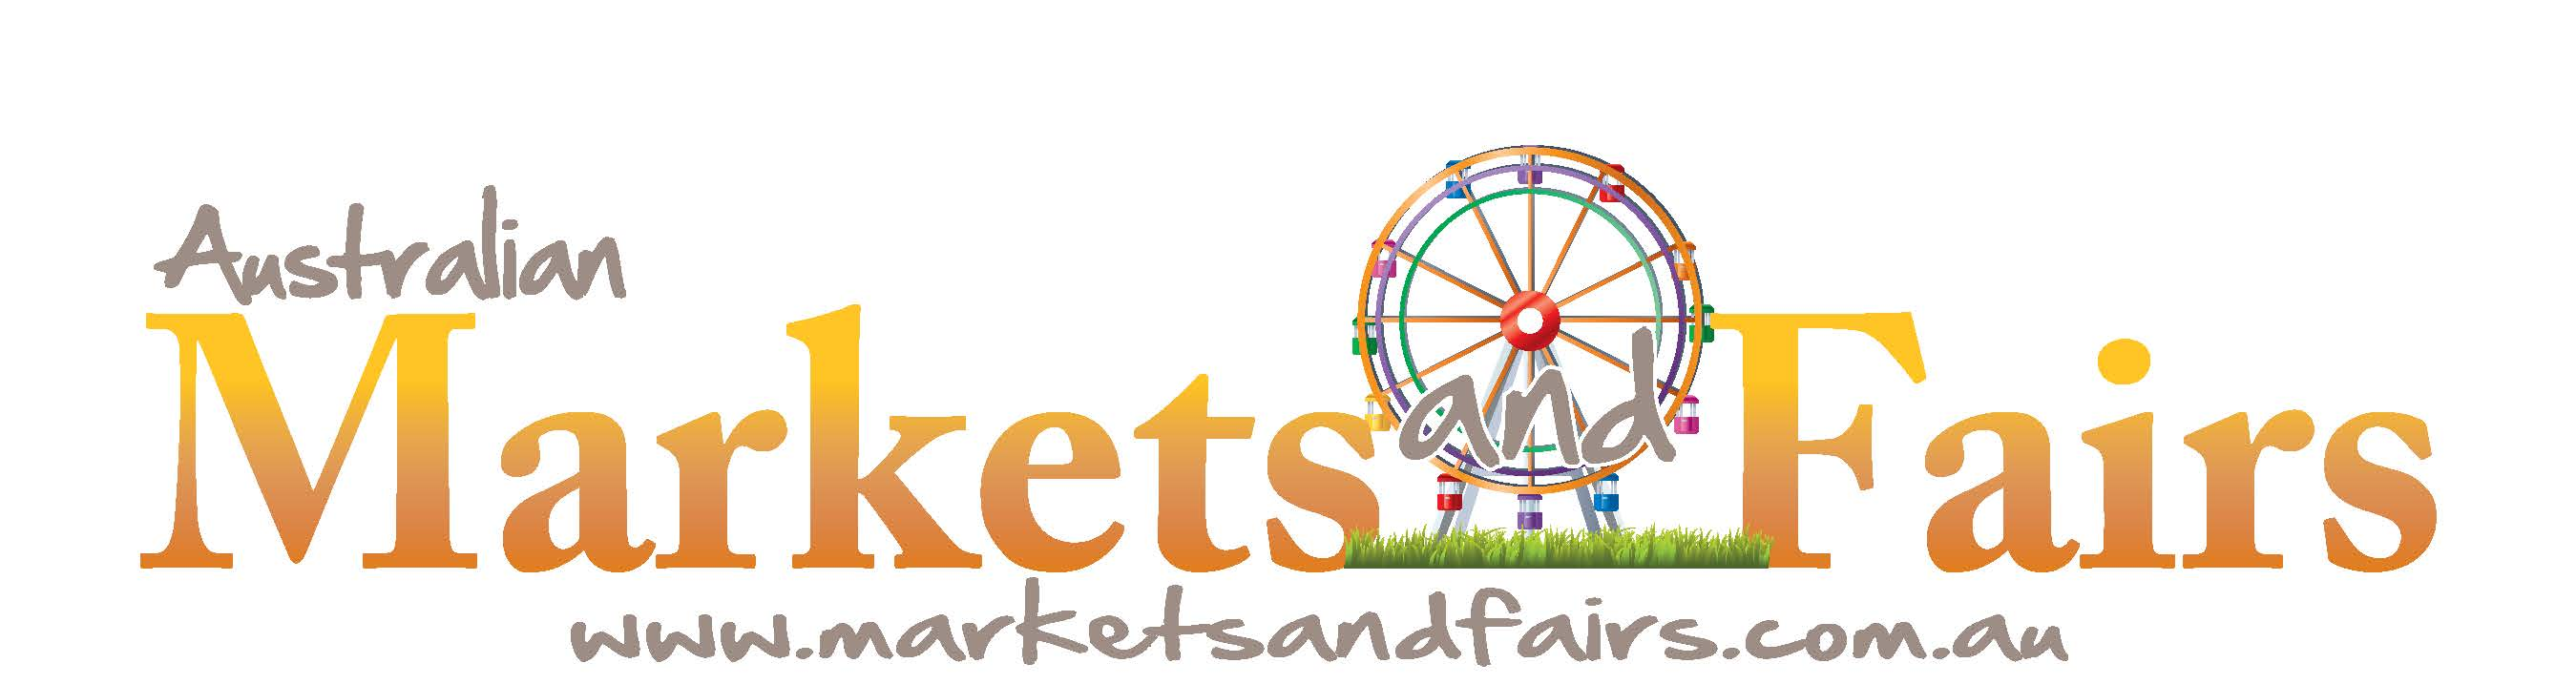 Australian Markets Fairs web